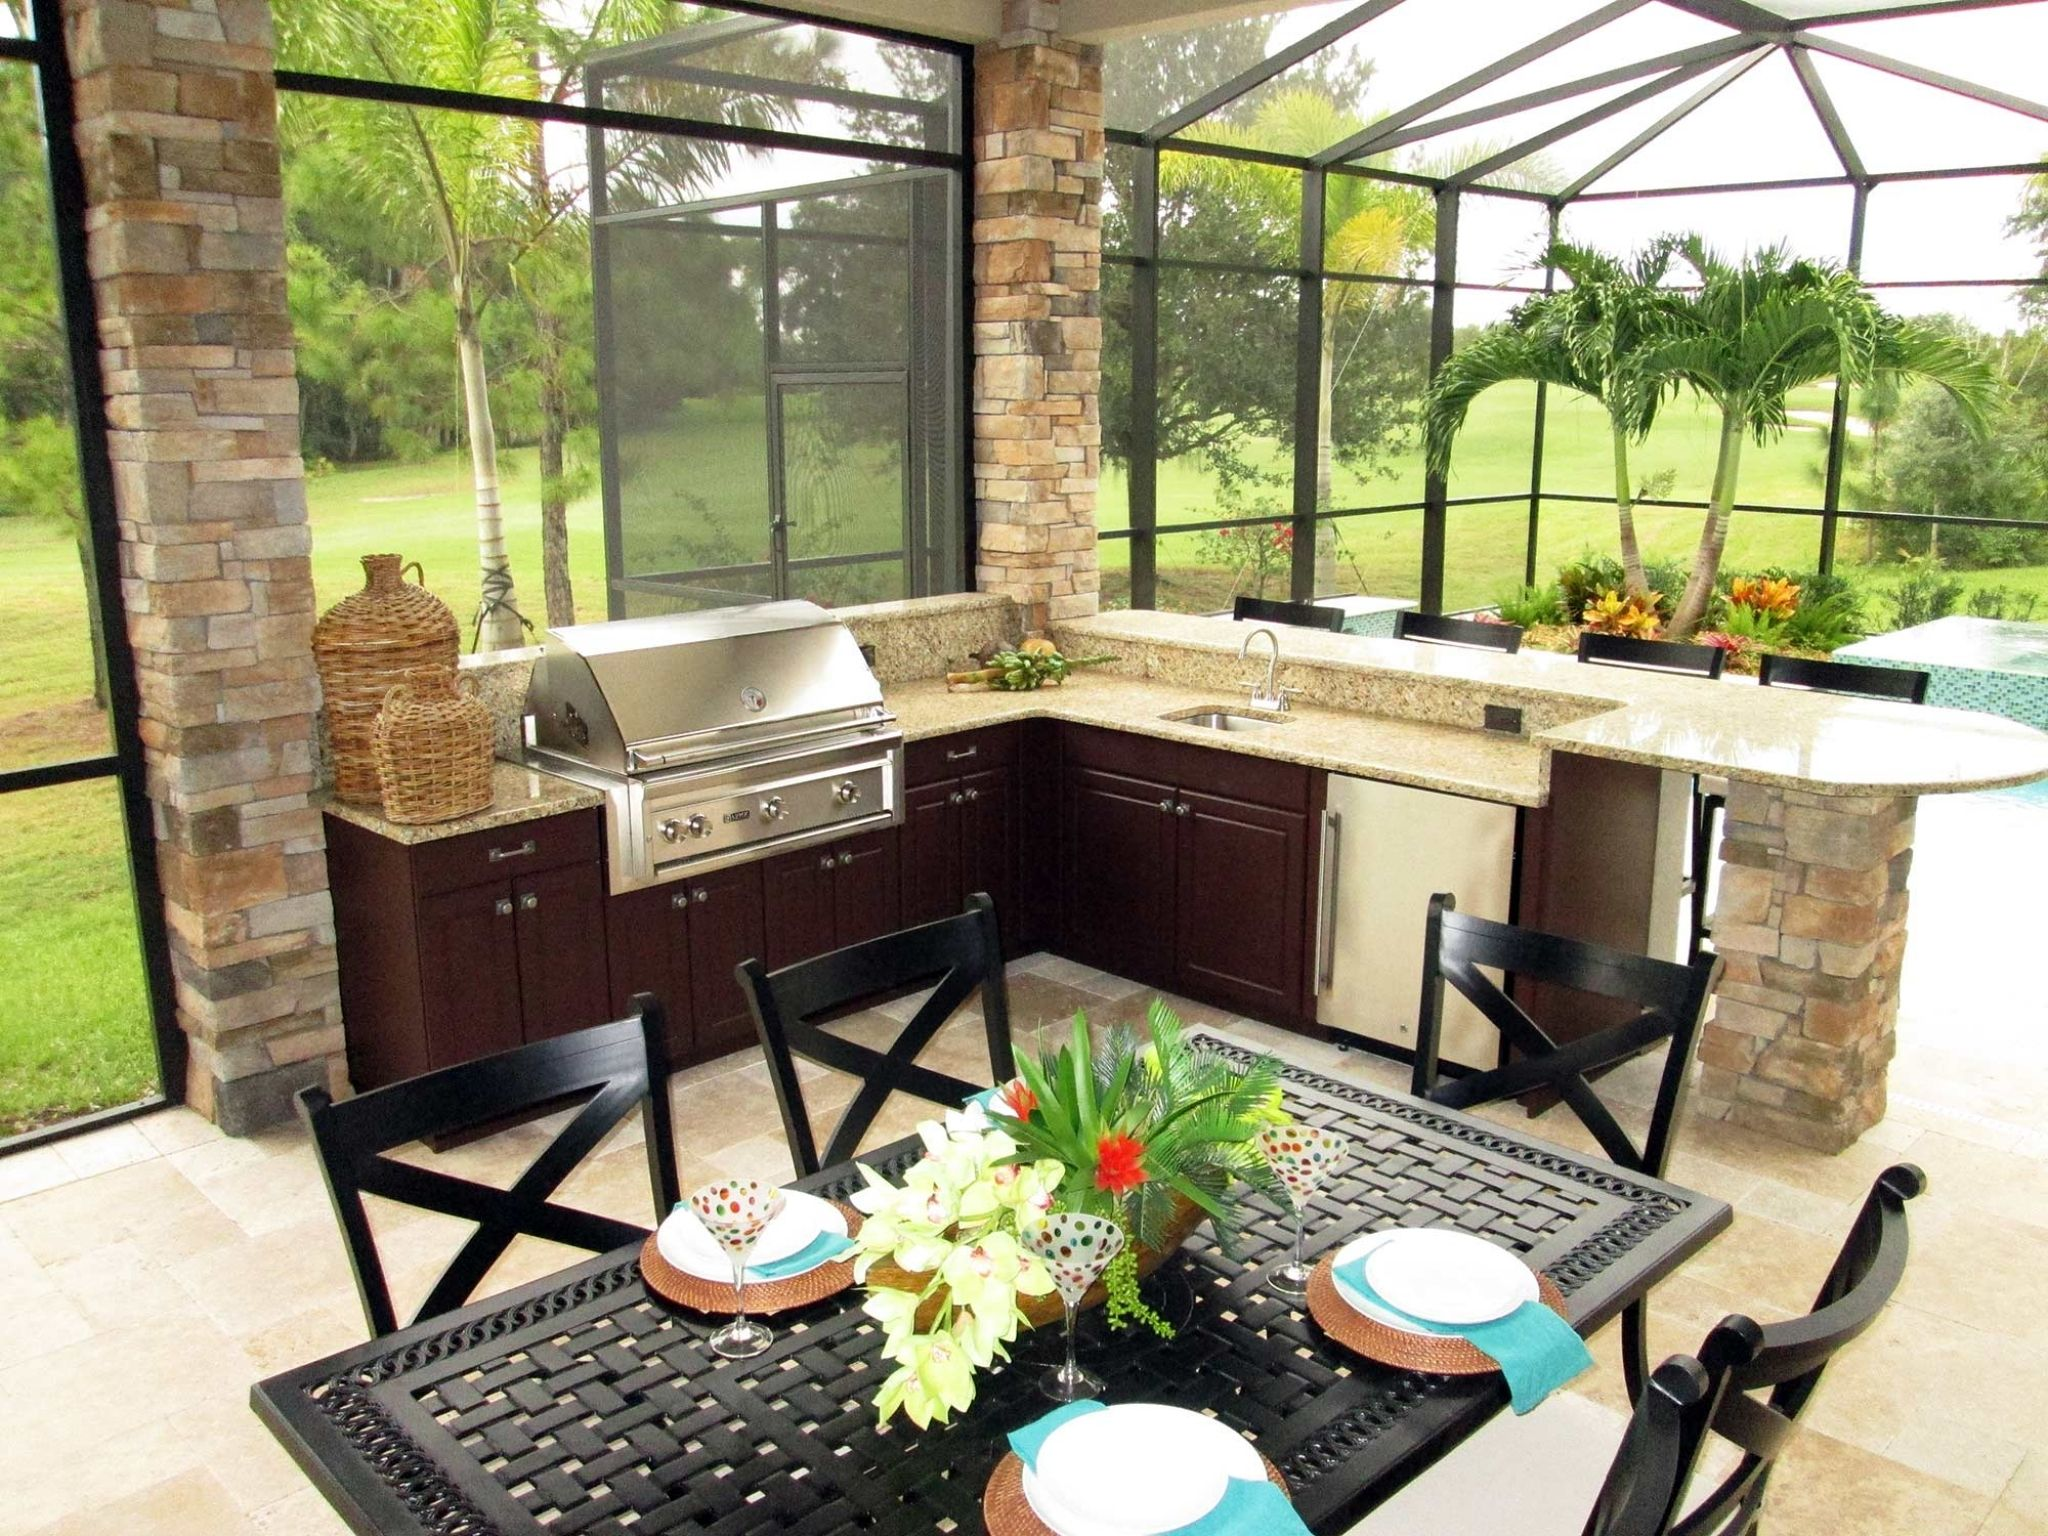 Polymer Cabinets For Outdoor Kitchens Favorite Interior Paint Colors Outdoor Kitchen Outdoor Kitchen Design Outdoor Kitchen Appliances